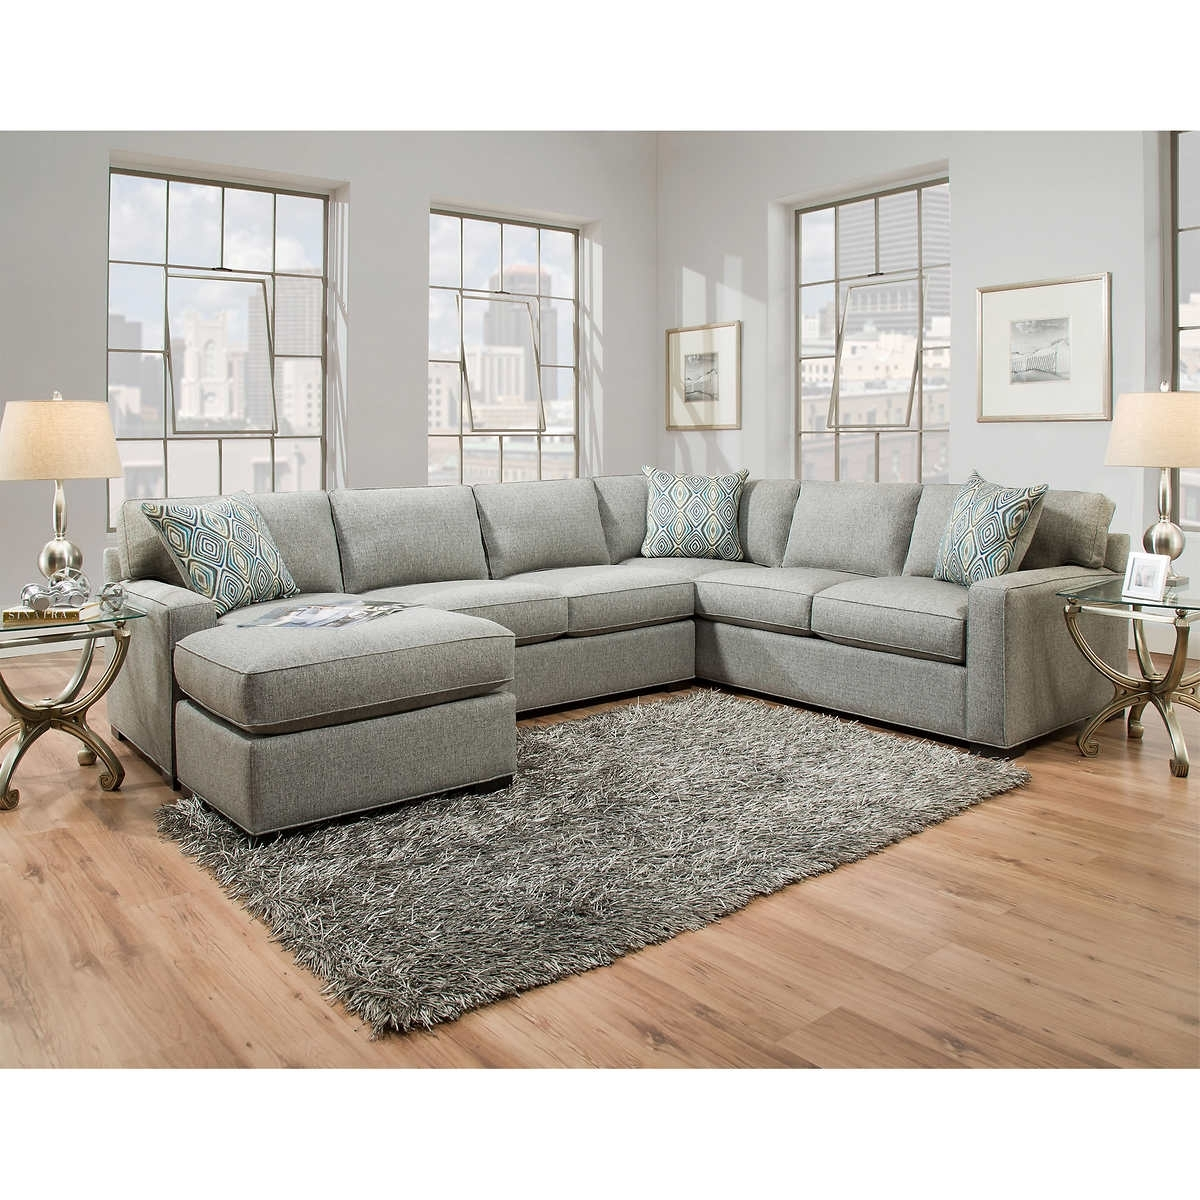 Costco Sofas Sectionals - Hotelsbacau regarding Raleigh Sectional Sofas (Image 6 of 10)